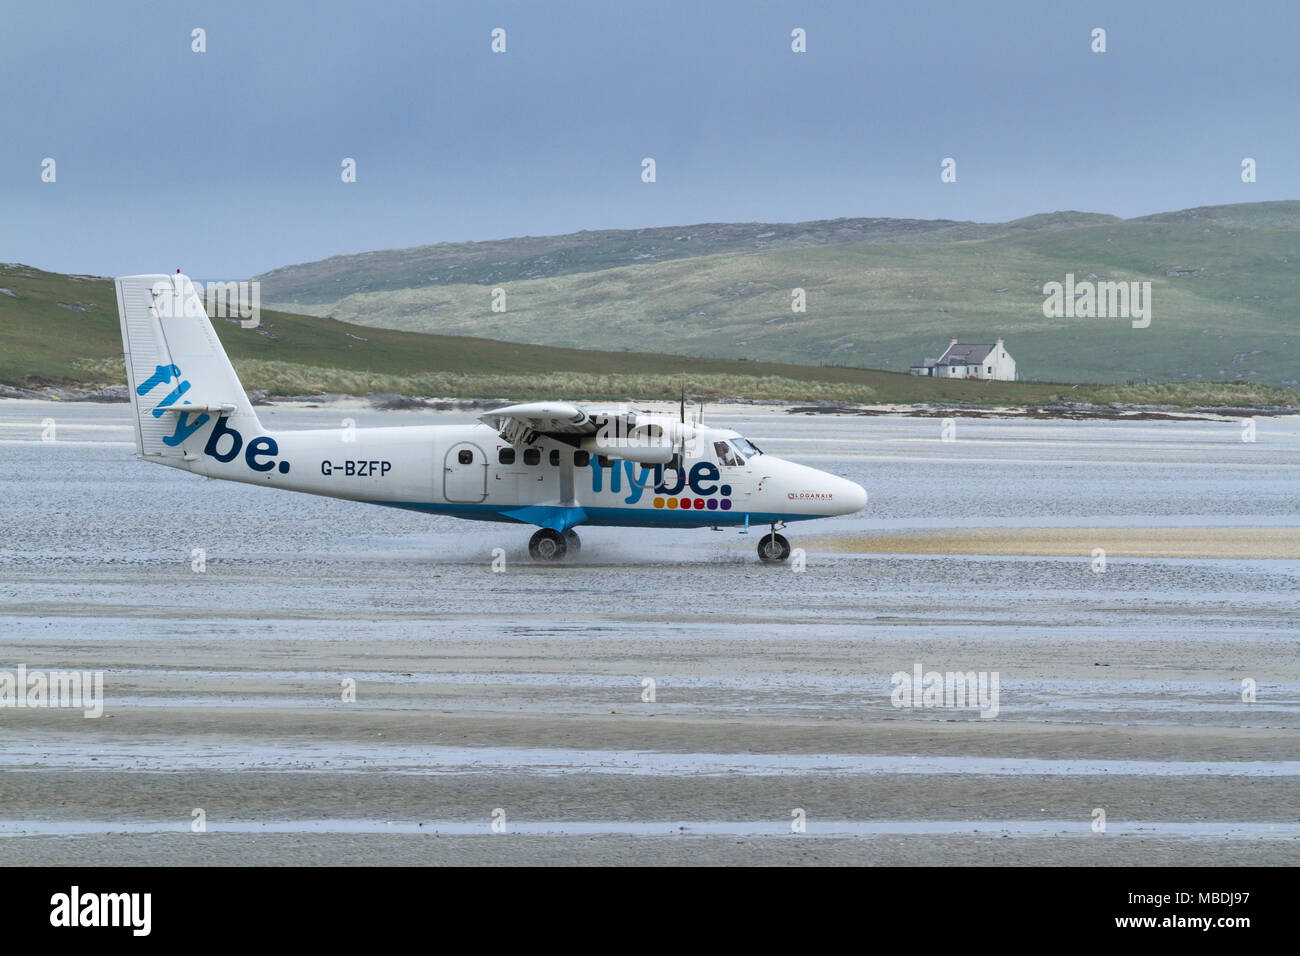 DHC Twin Otter passenger aeroplane taxying prior to take off from Barra Airport, Isle of Barra, Outer Hebrides, Scotland - Stock Image